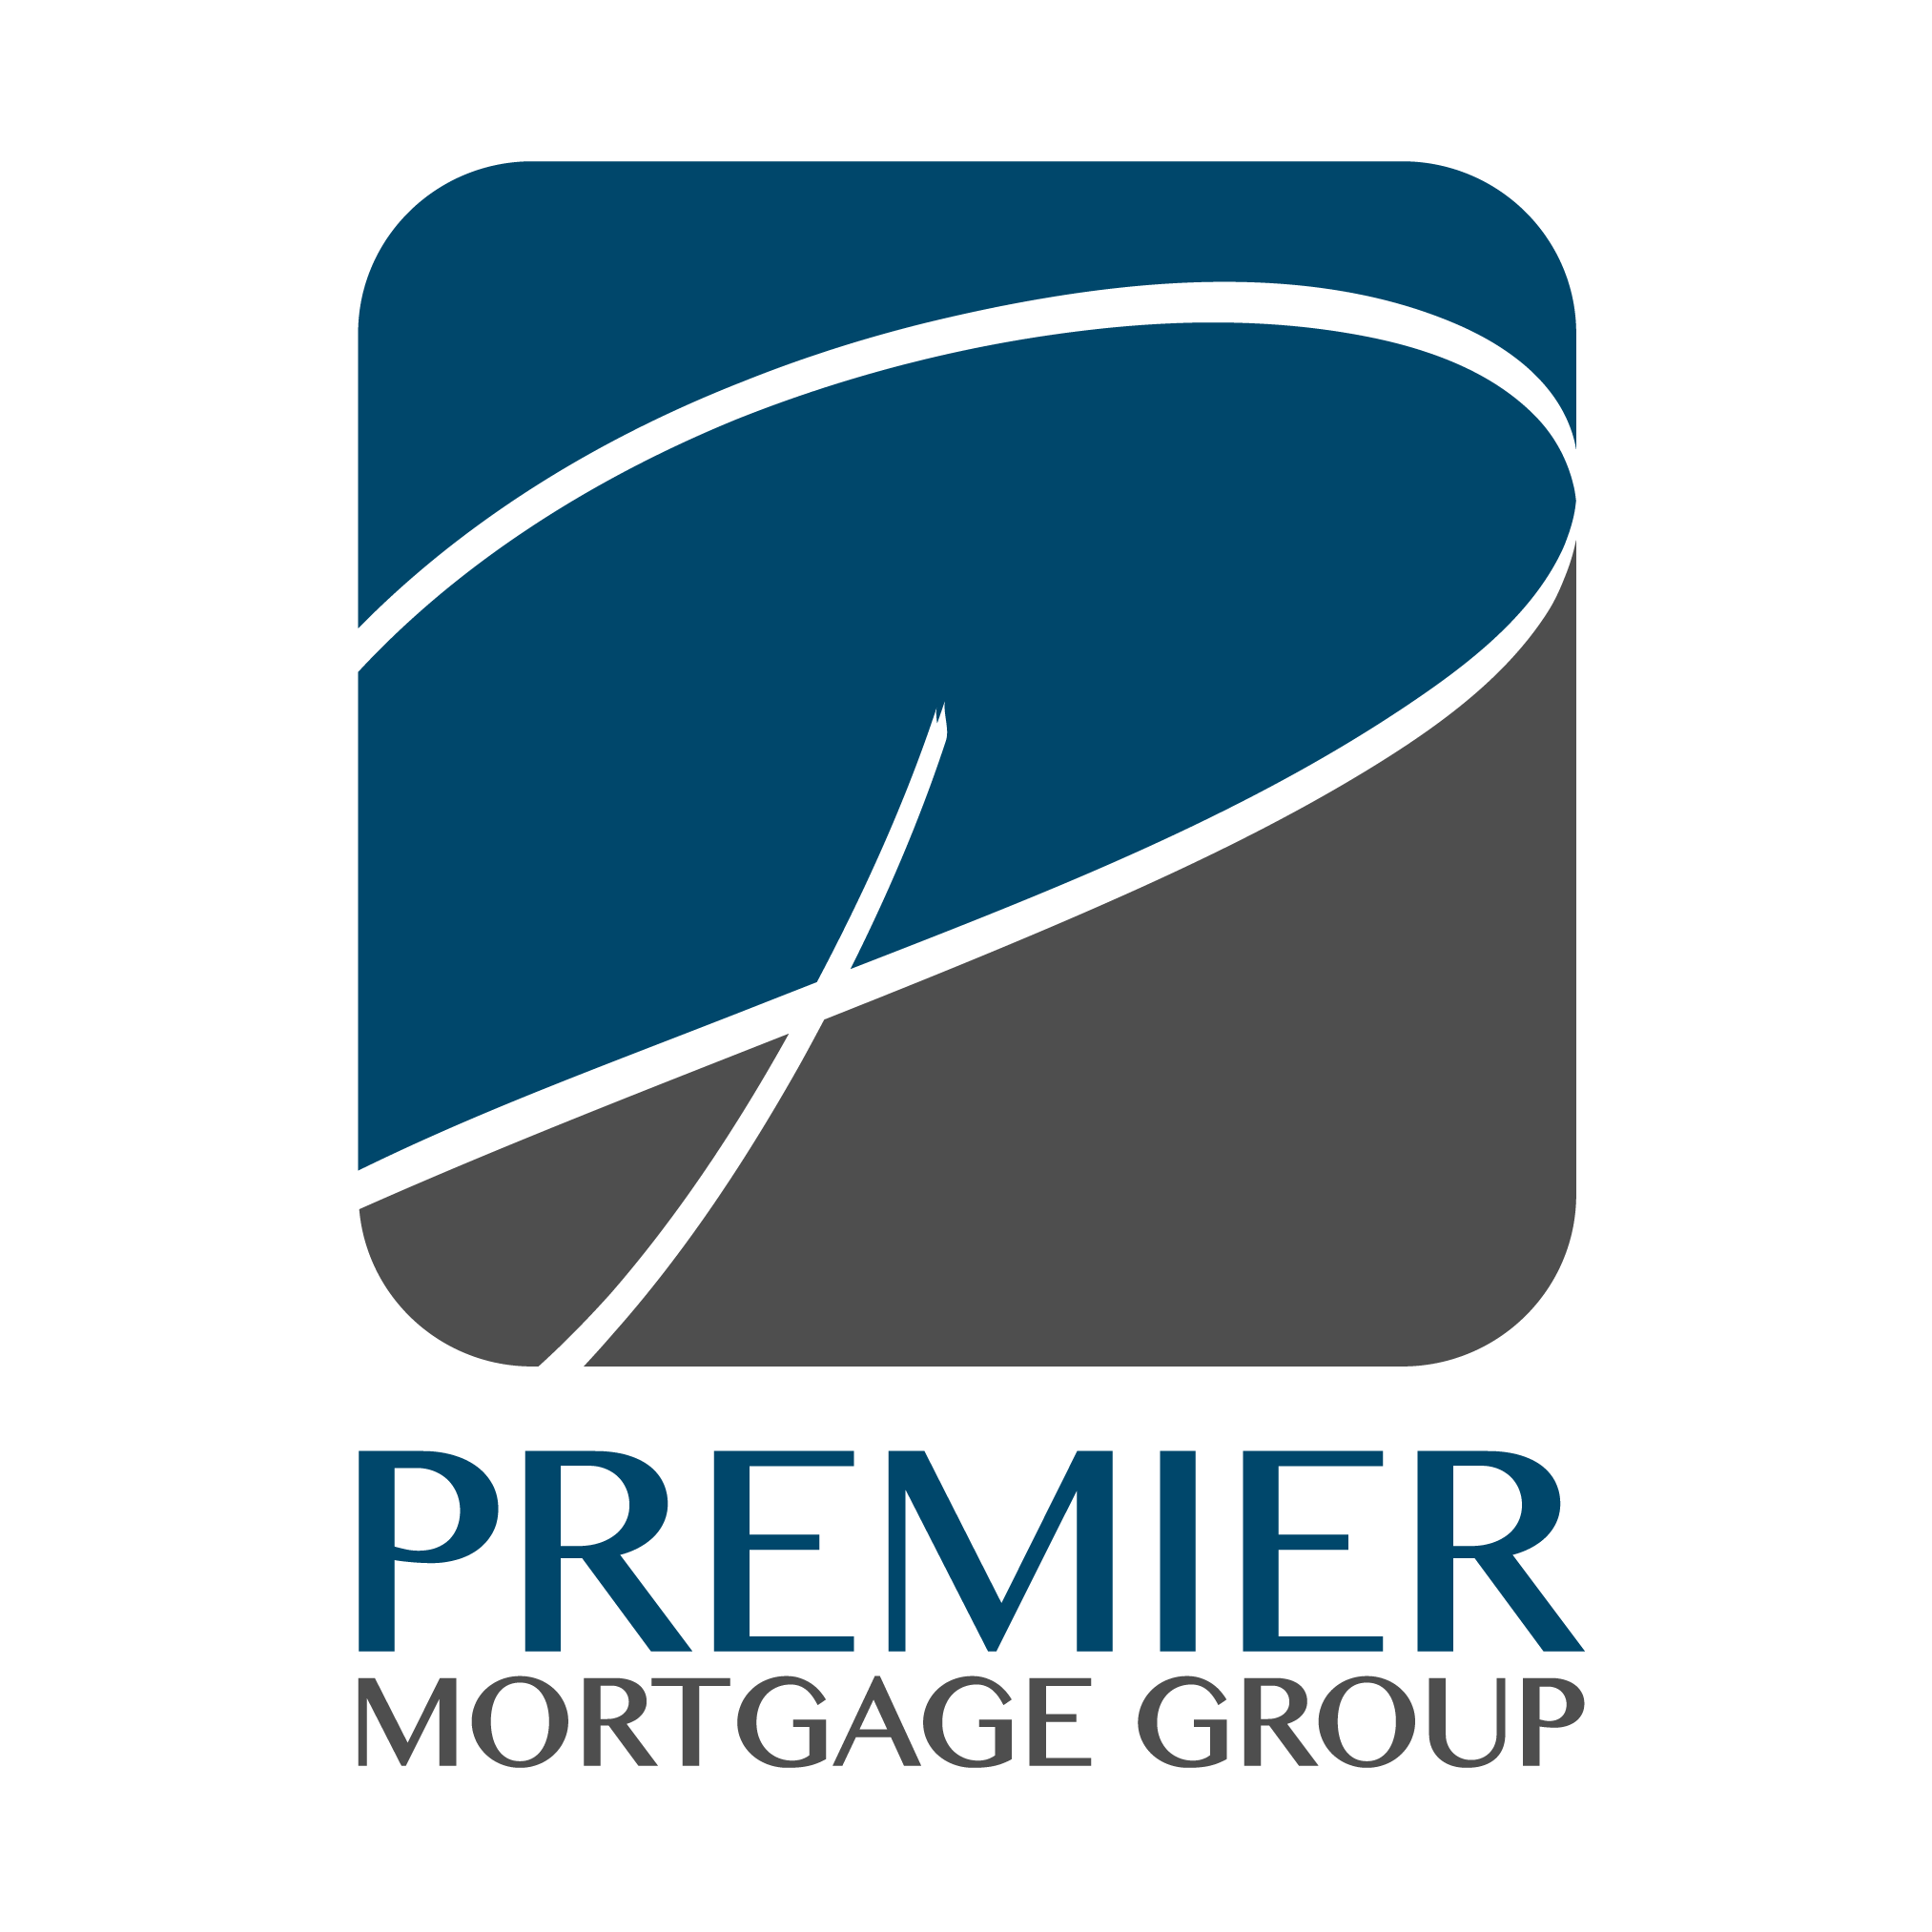 Premier Mortgage Group, Philip Zajicek, NMLS# 872317